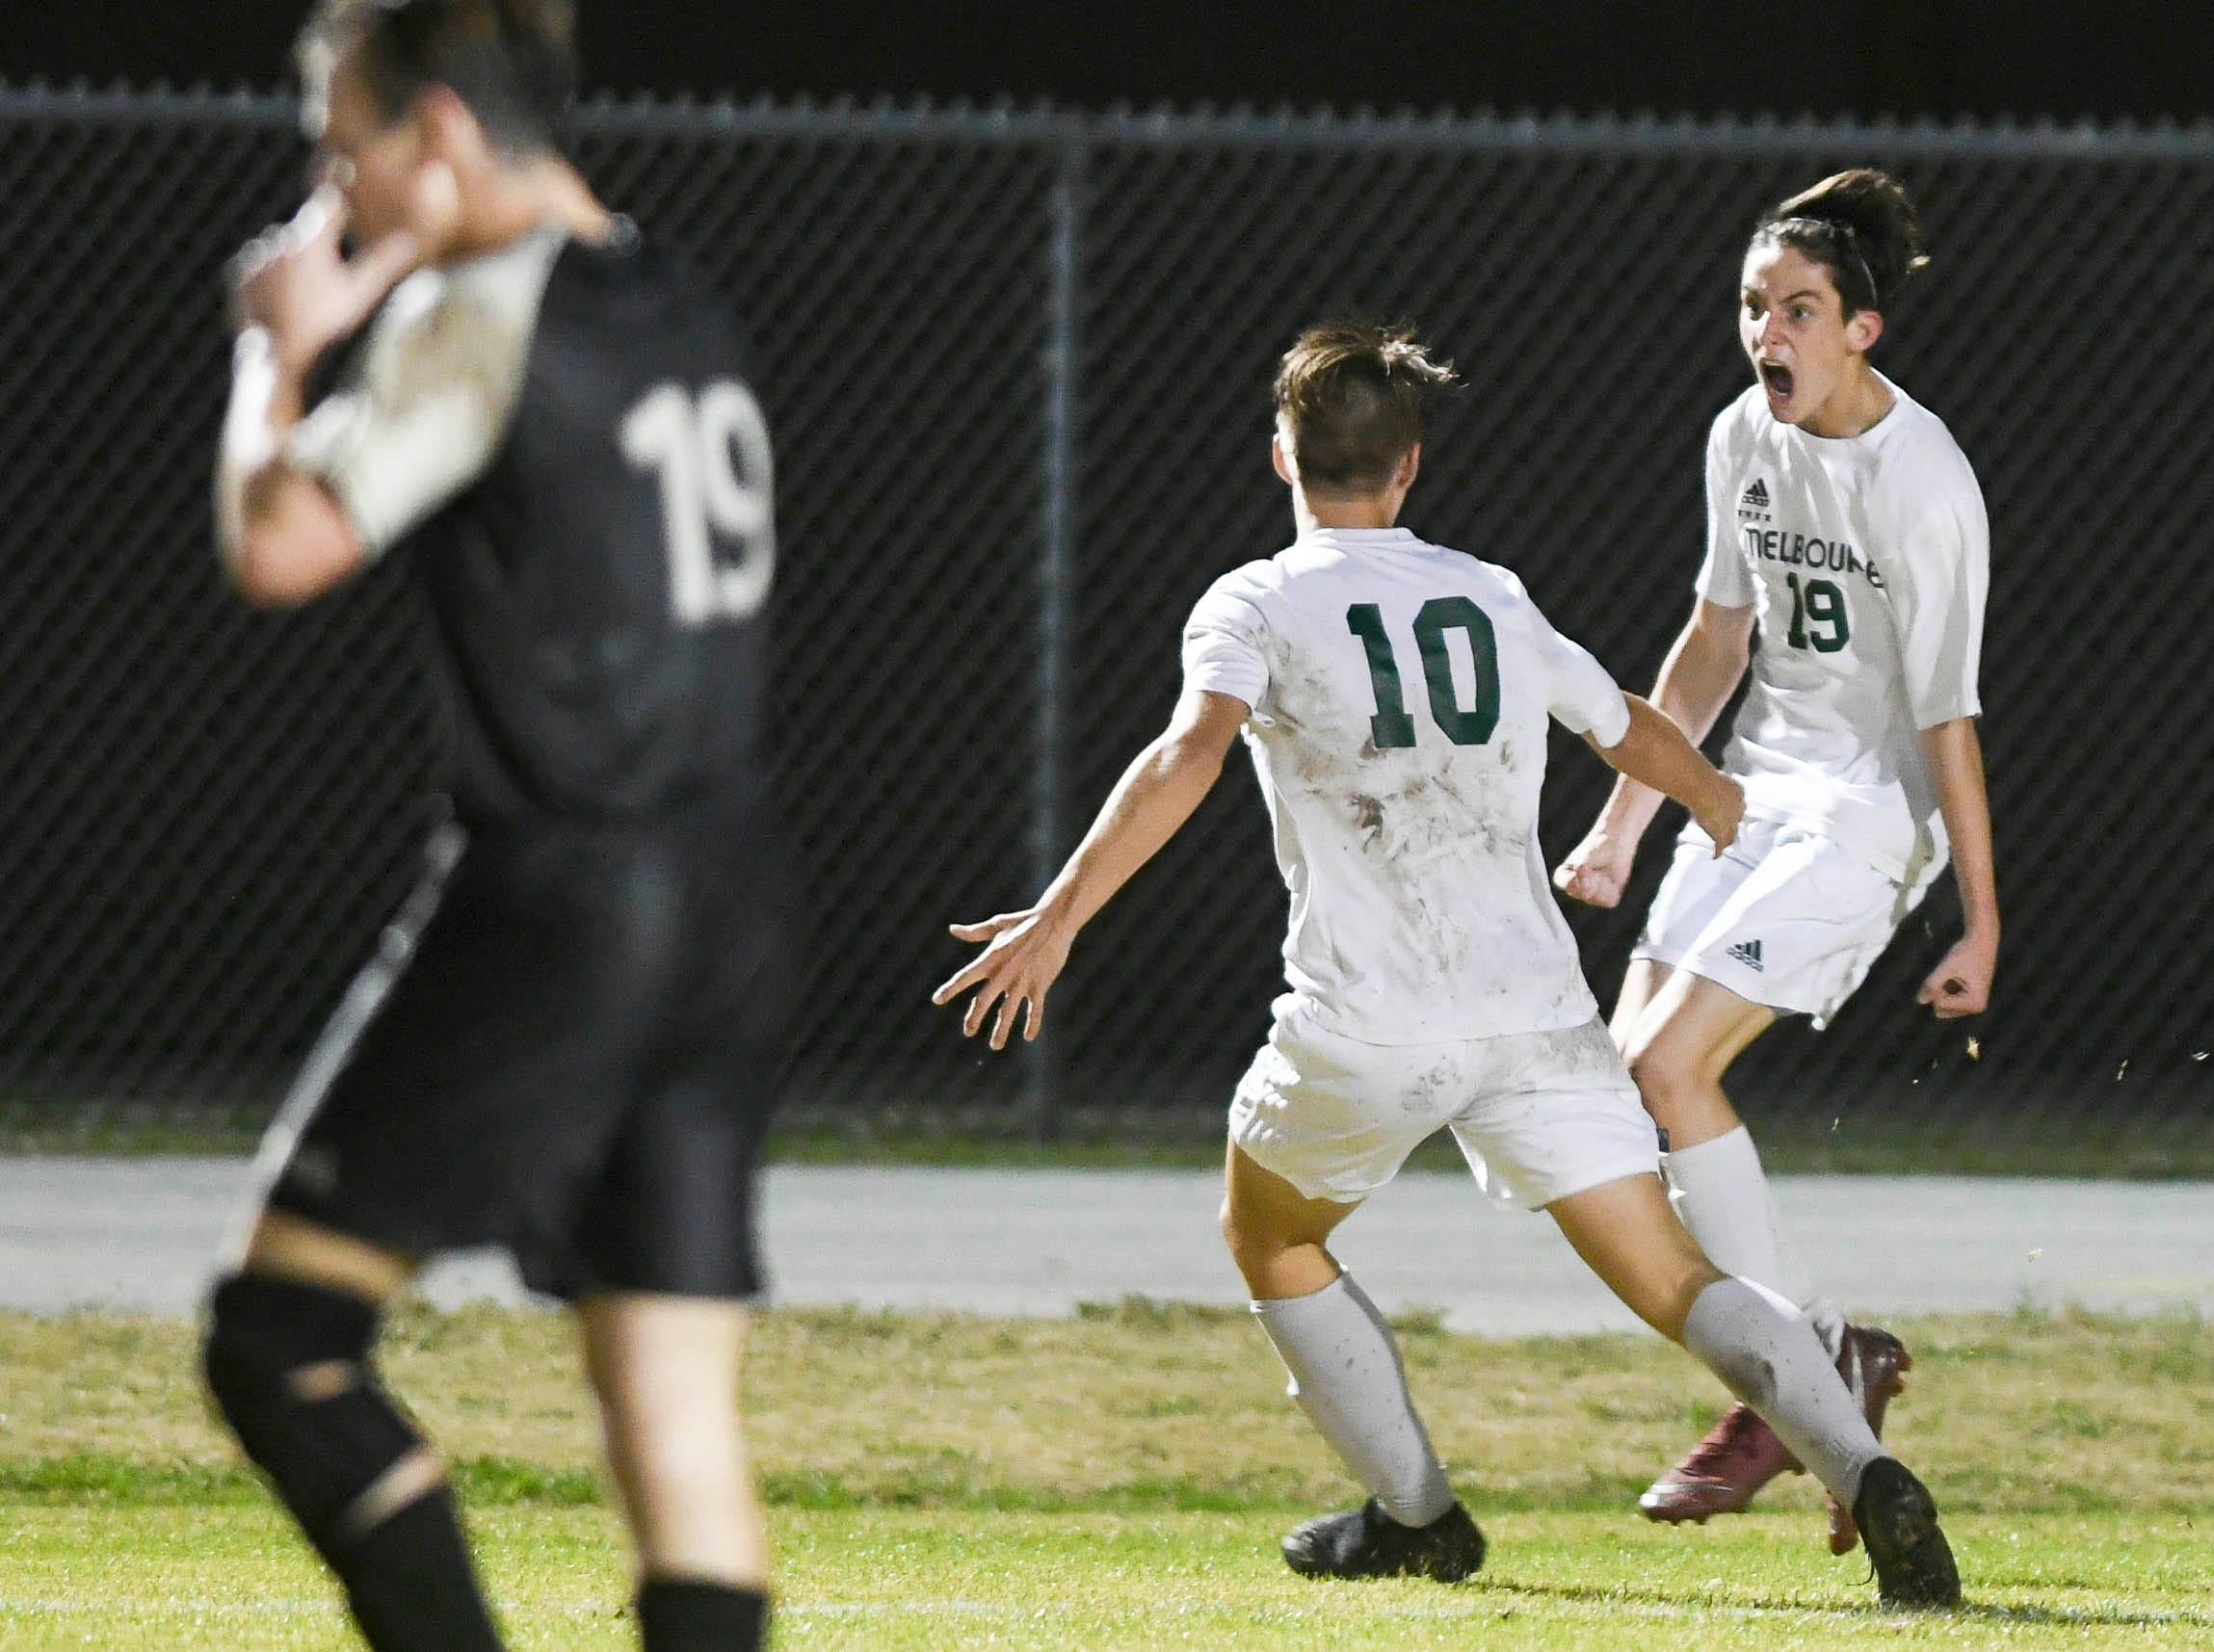 Melbourne's Christian Watts (19) celebrates a goal with teammate Aden O'Hara Friday at Viera High.